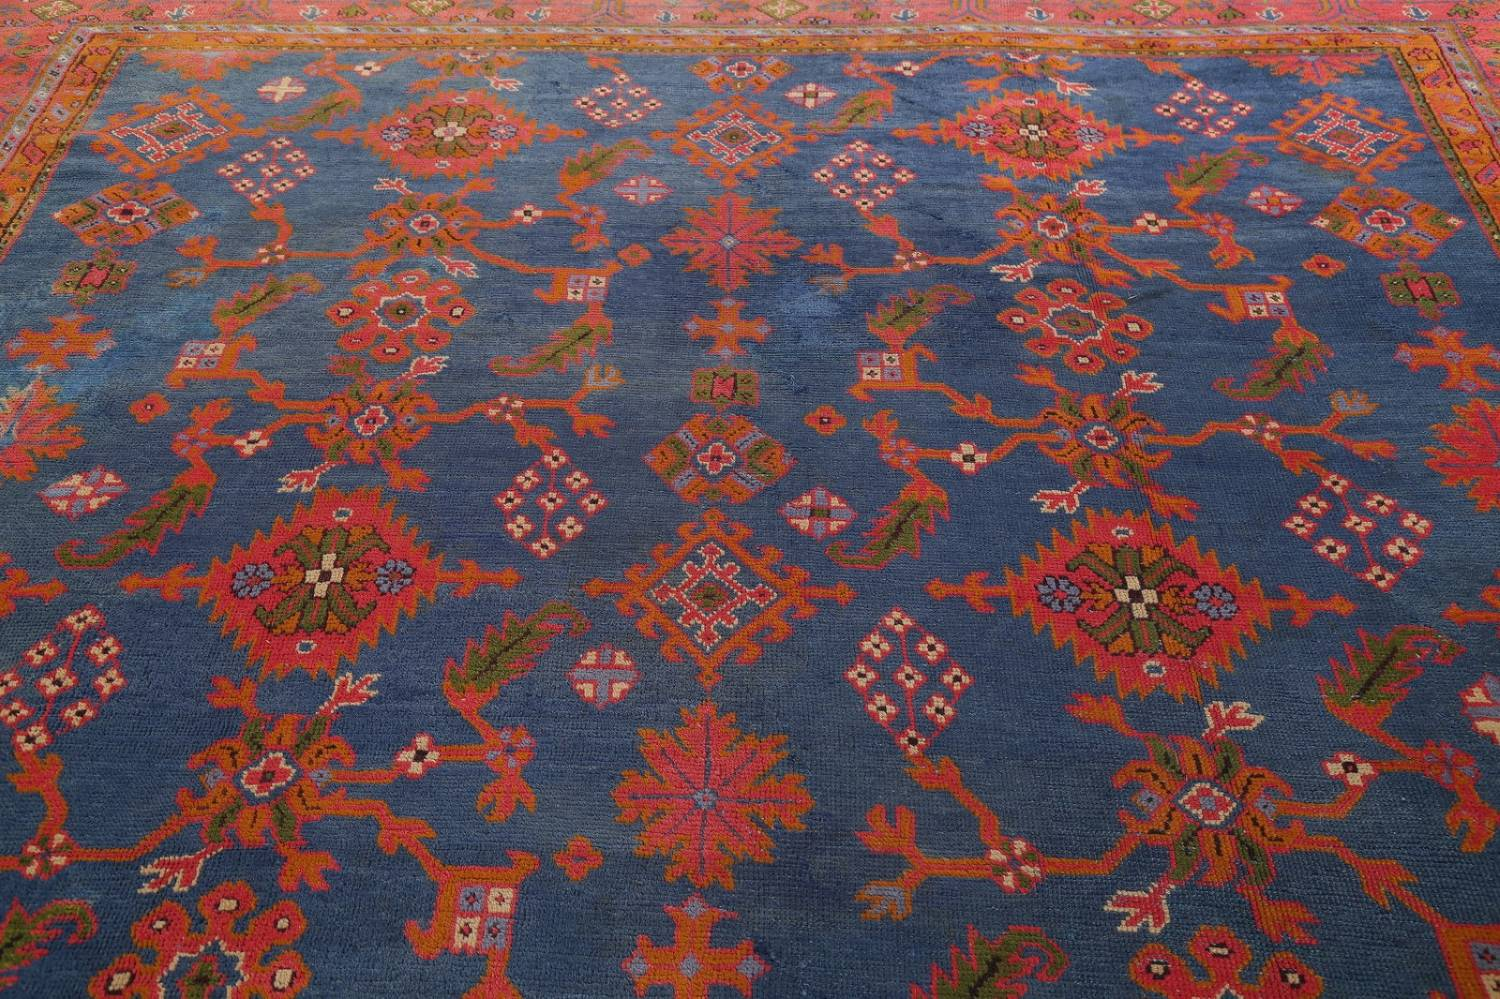 Antique Vegetable Dye Oushak Turkish Hand-Knotted Area Rug Wool 11x16 image 16